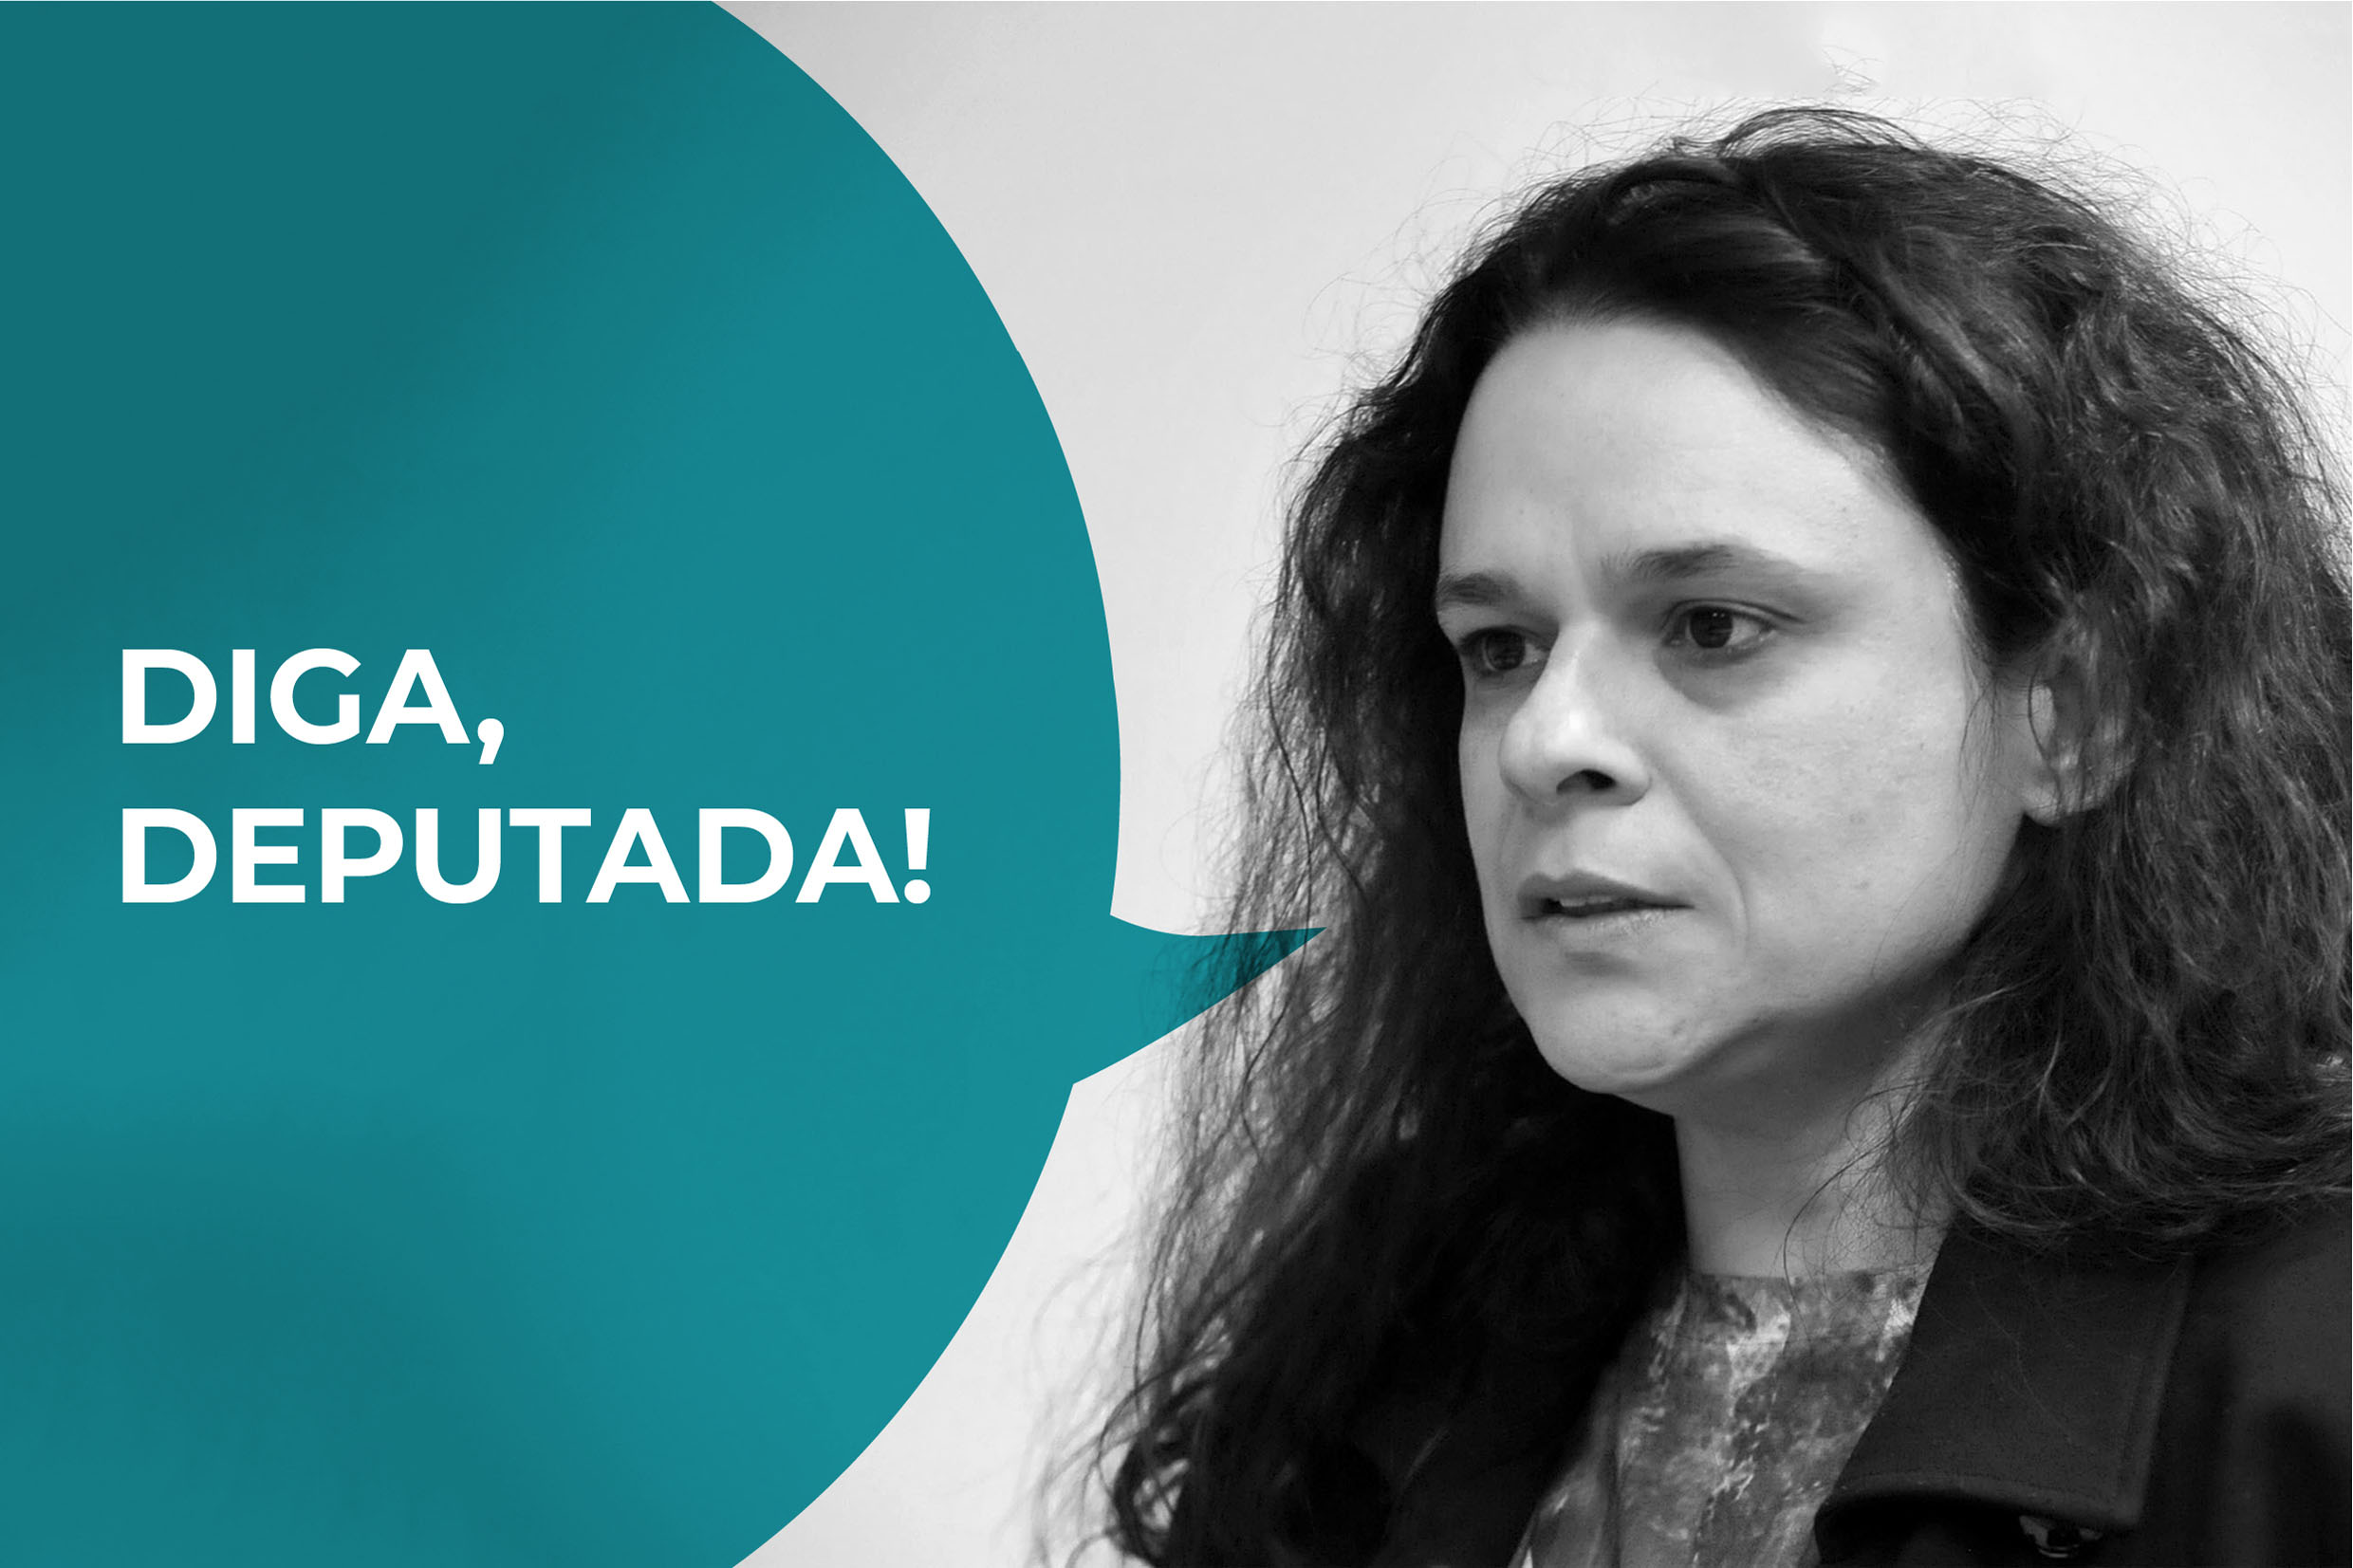 Janaina Paschoal<a style='float:right' href='https://www3.al.sp.gov.br/repositorio/noticia/N-08-2019/fg238414.jpg' target=_blank><img src='/_img/material-file-download-white.png' width='14px' alt='Clique para baixar a imagem'></a>